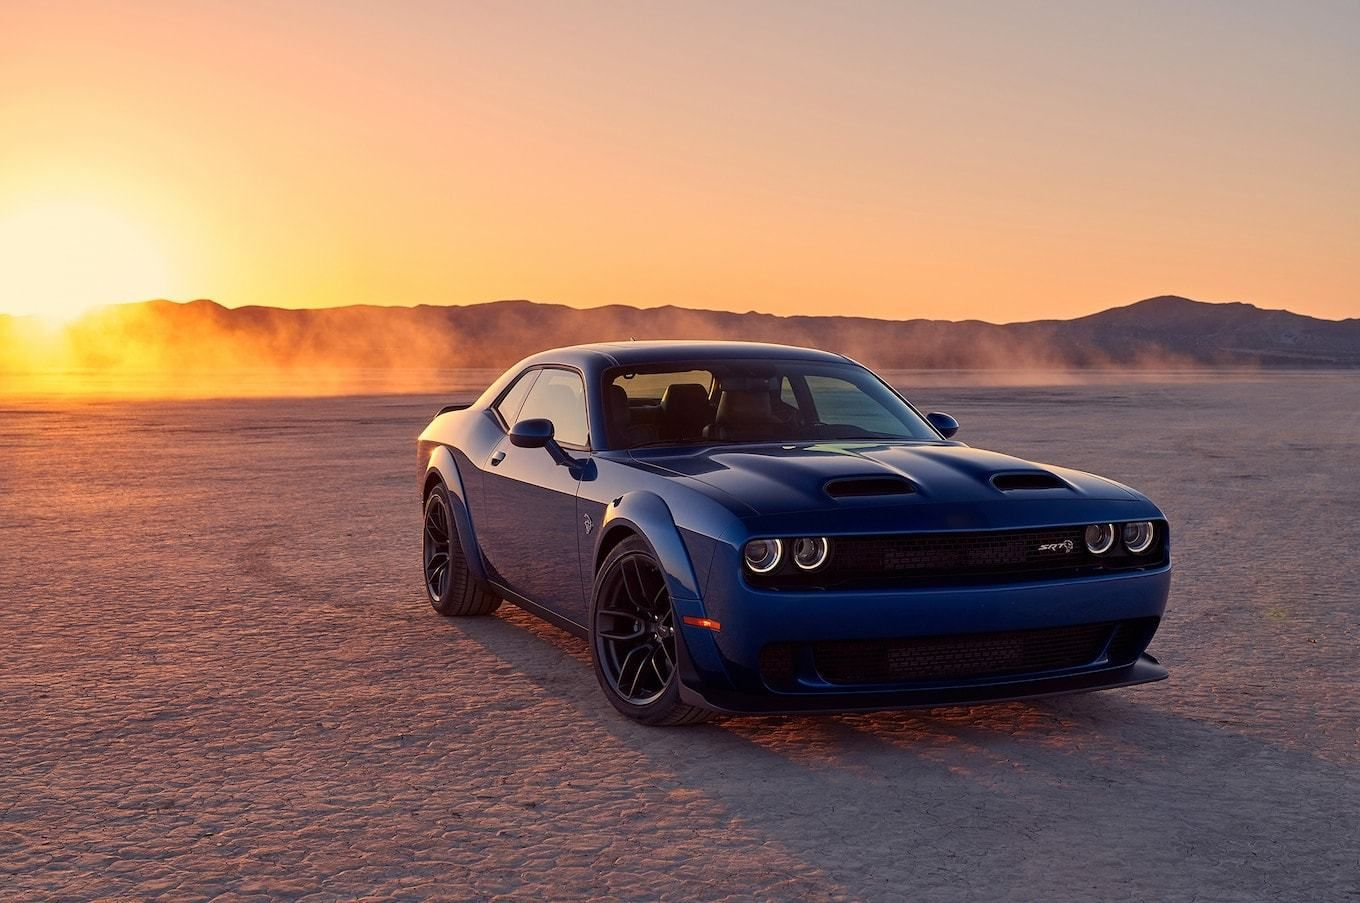 Shred Some Rubber With The Hennessey Hpe1000 Hellcat Redeye Dodge Challenger Srt Hellcat Dodge Challenger Hellcat Dodge Challenger